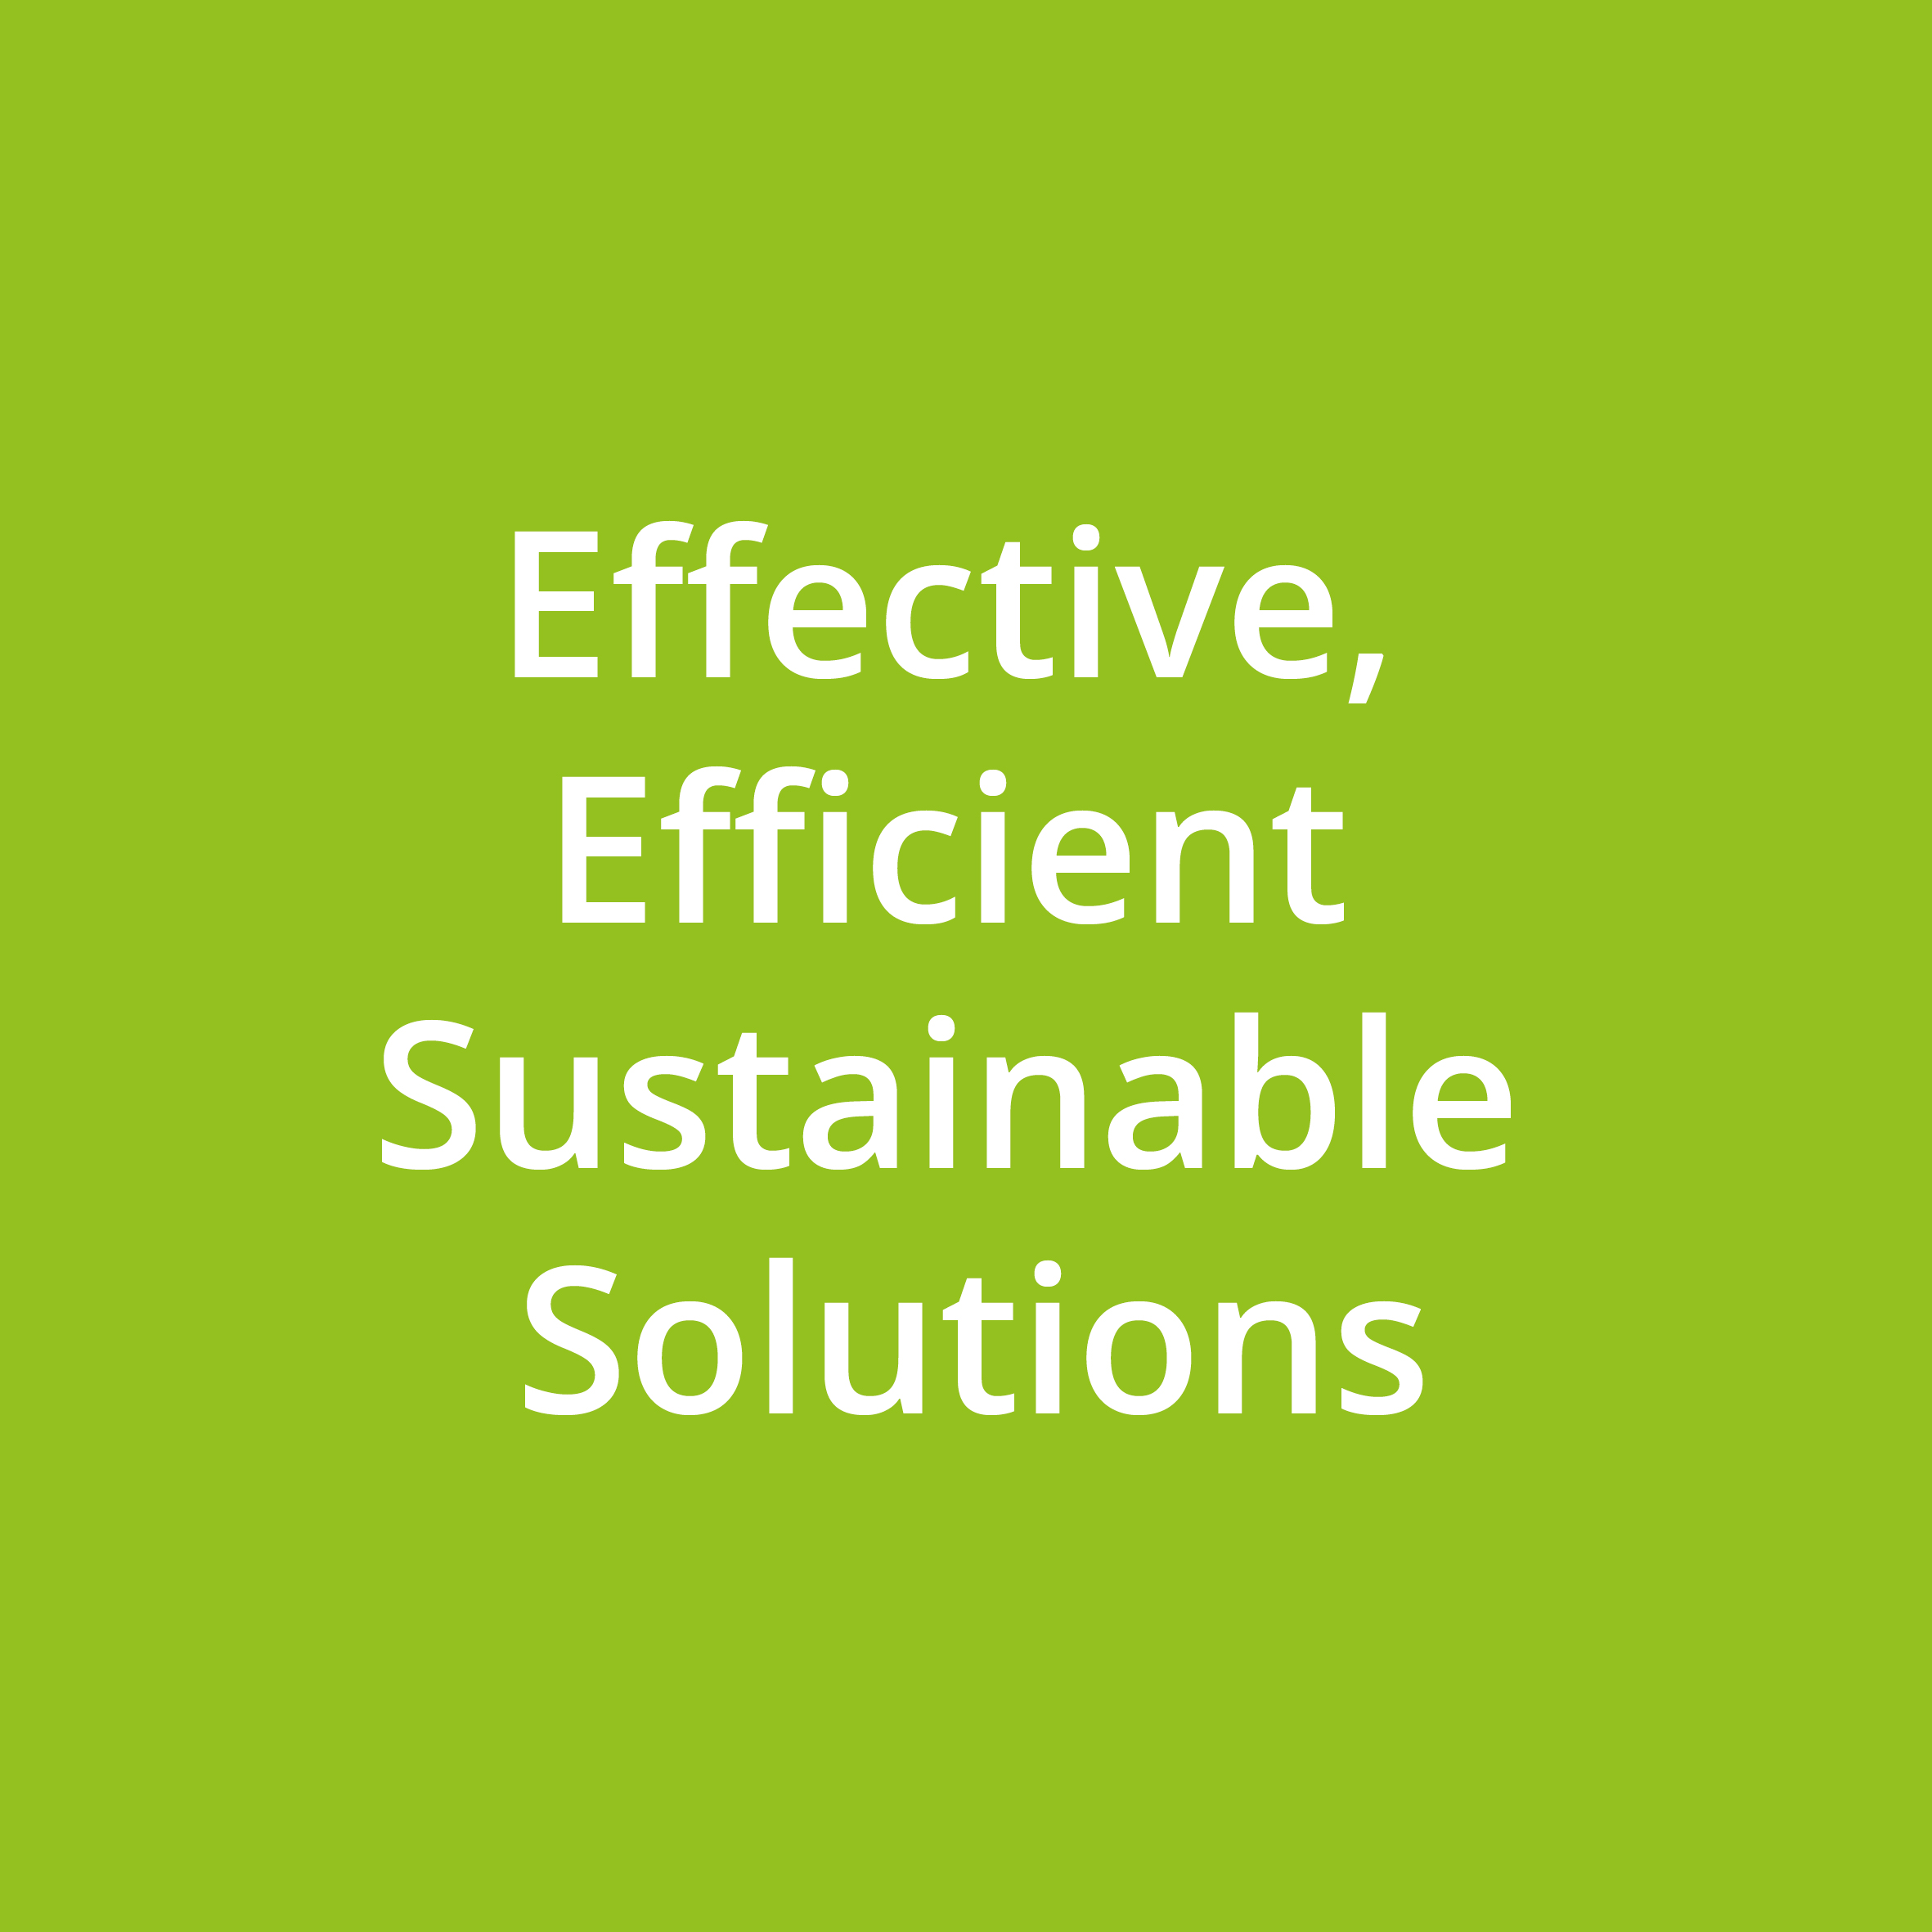 Effective, Efficient Sustainable Solutions